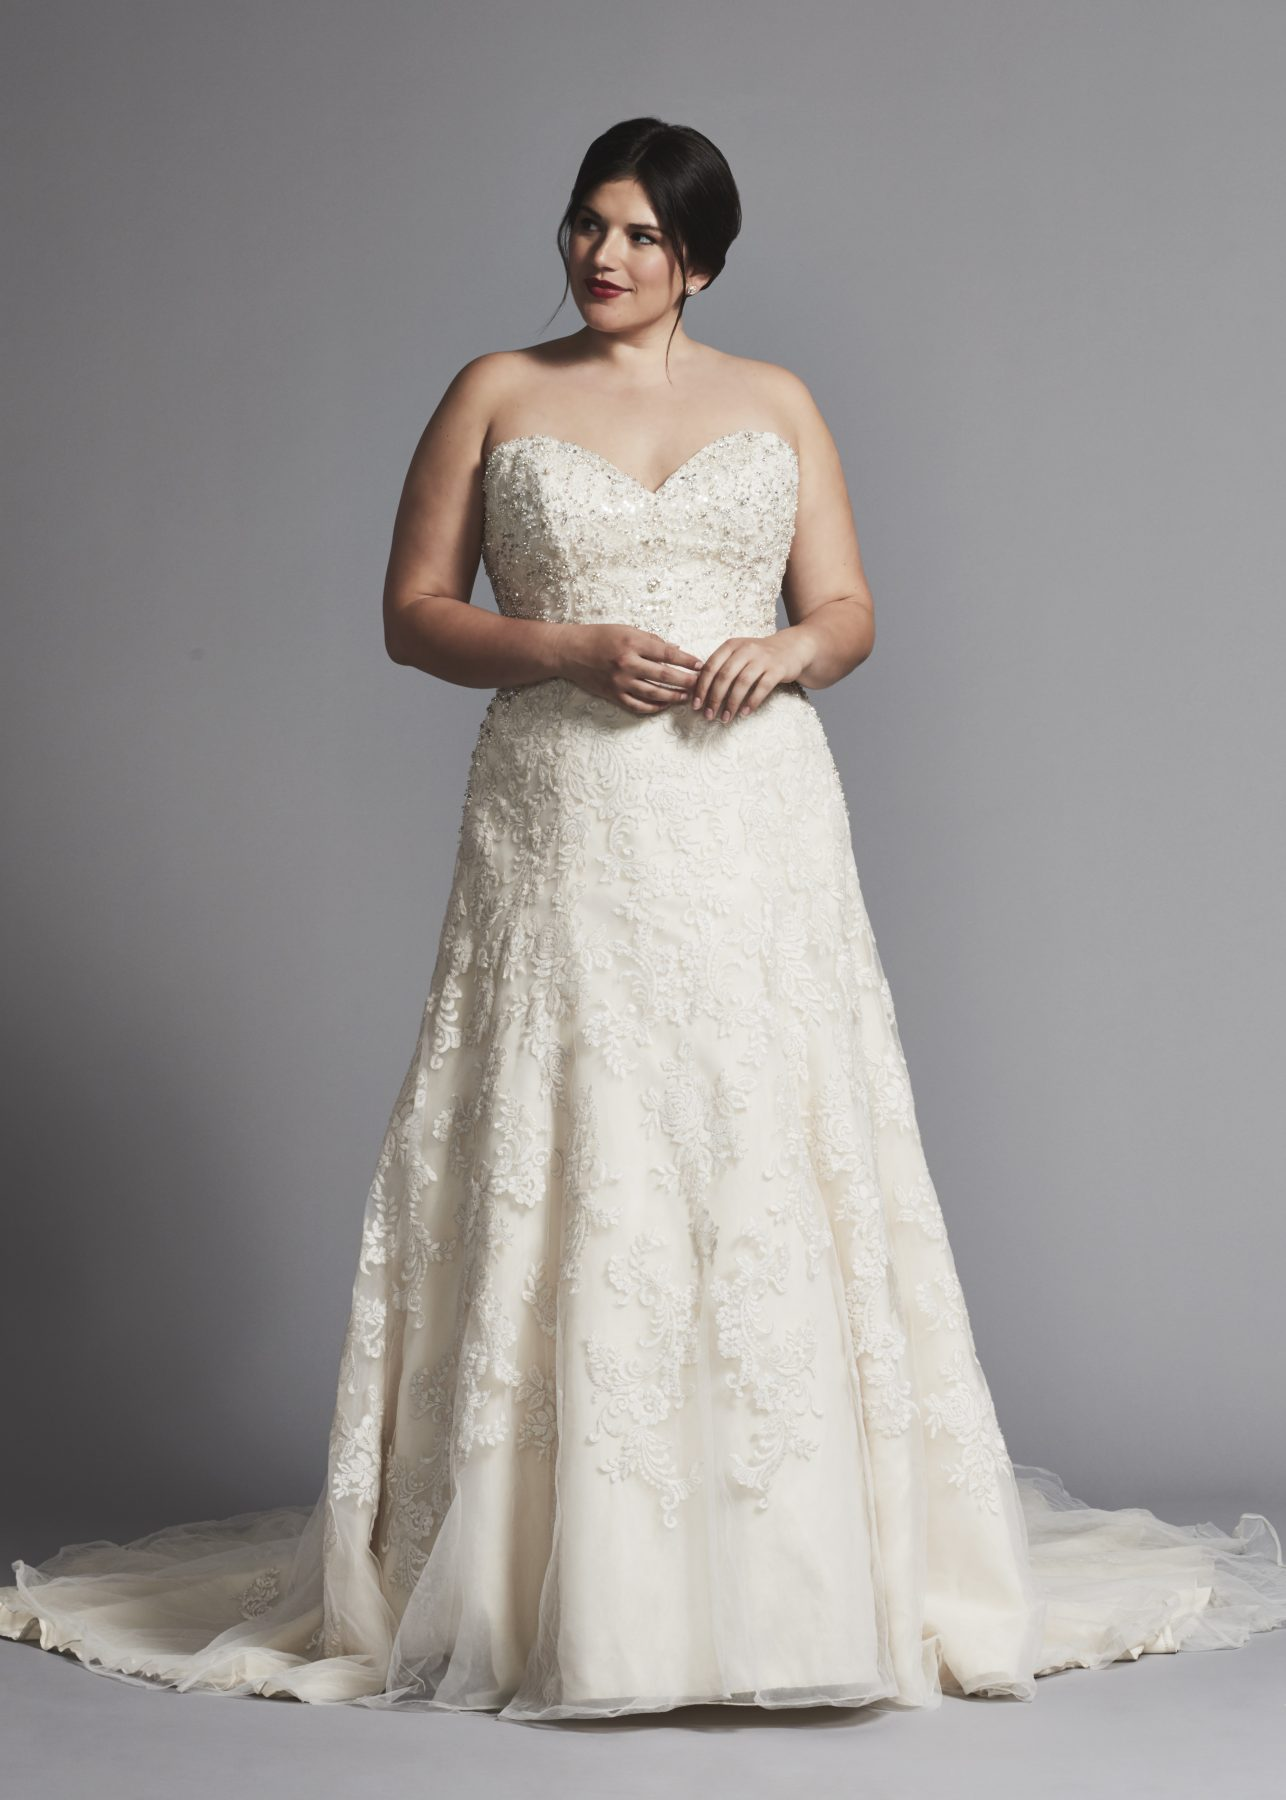 STRAPLESS A-LINE BEADED WEDDING DRESS by DANIELLE CAPRESE